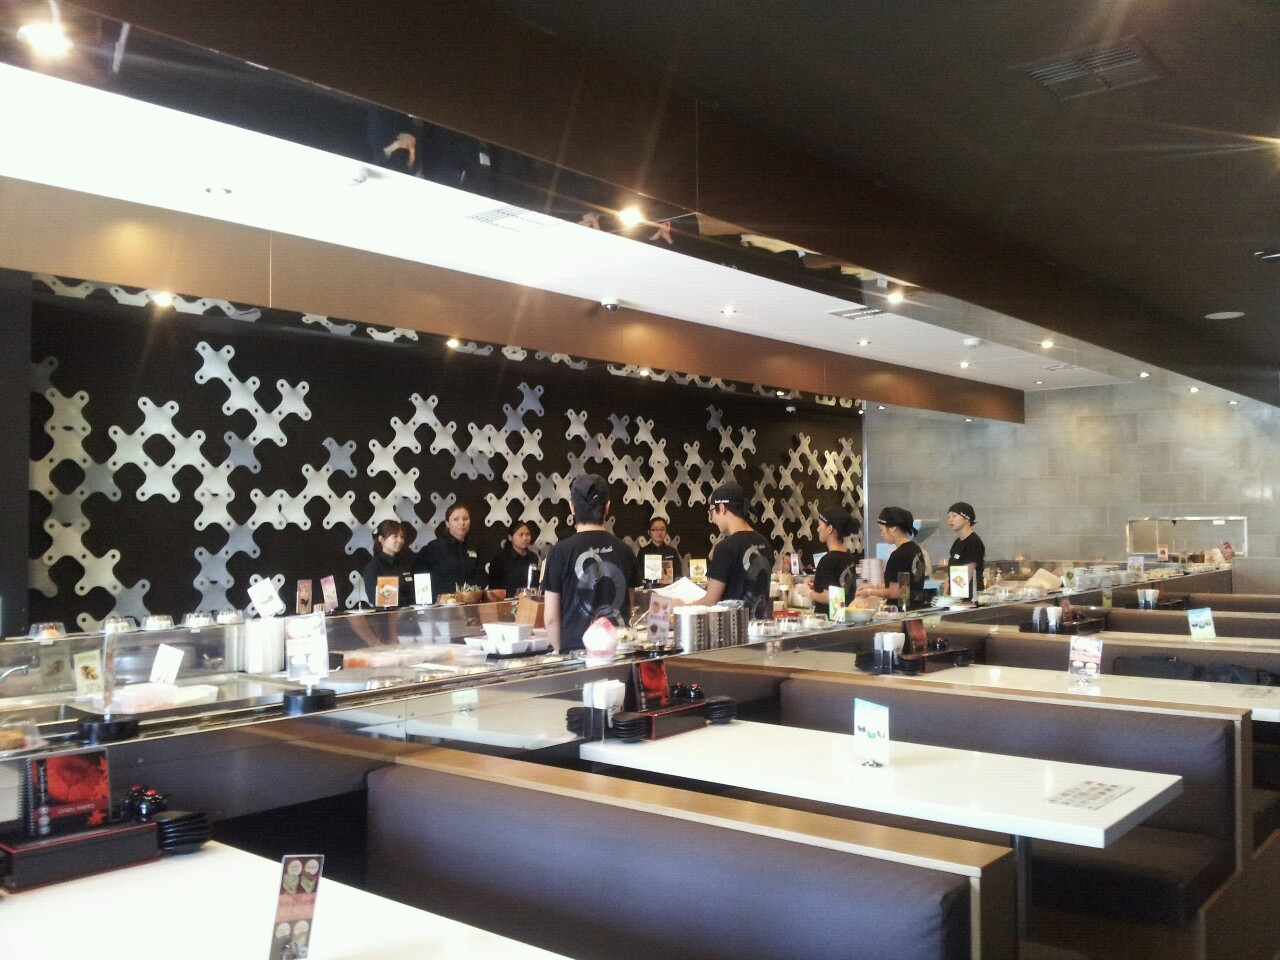 Unley Metro Sushi Train, Adelaide. Full of patrons after only 15 minutes of their daily opening time of 11.30am